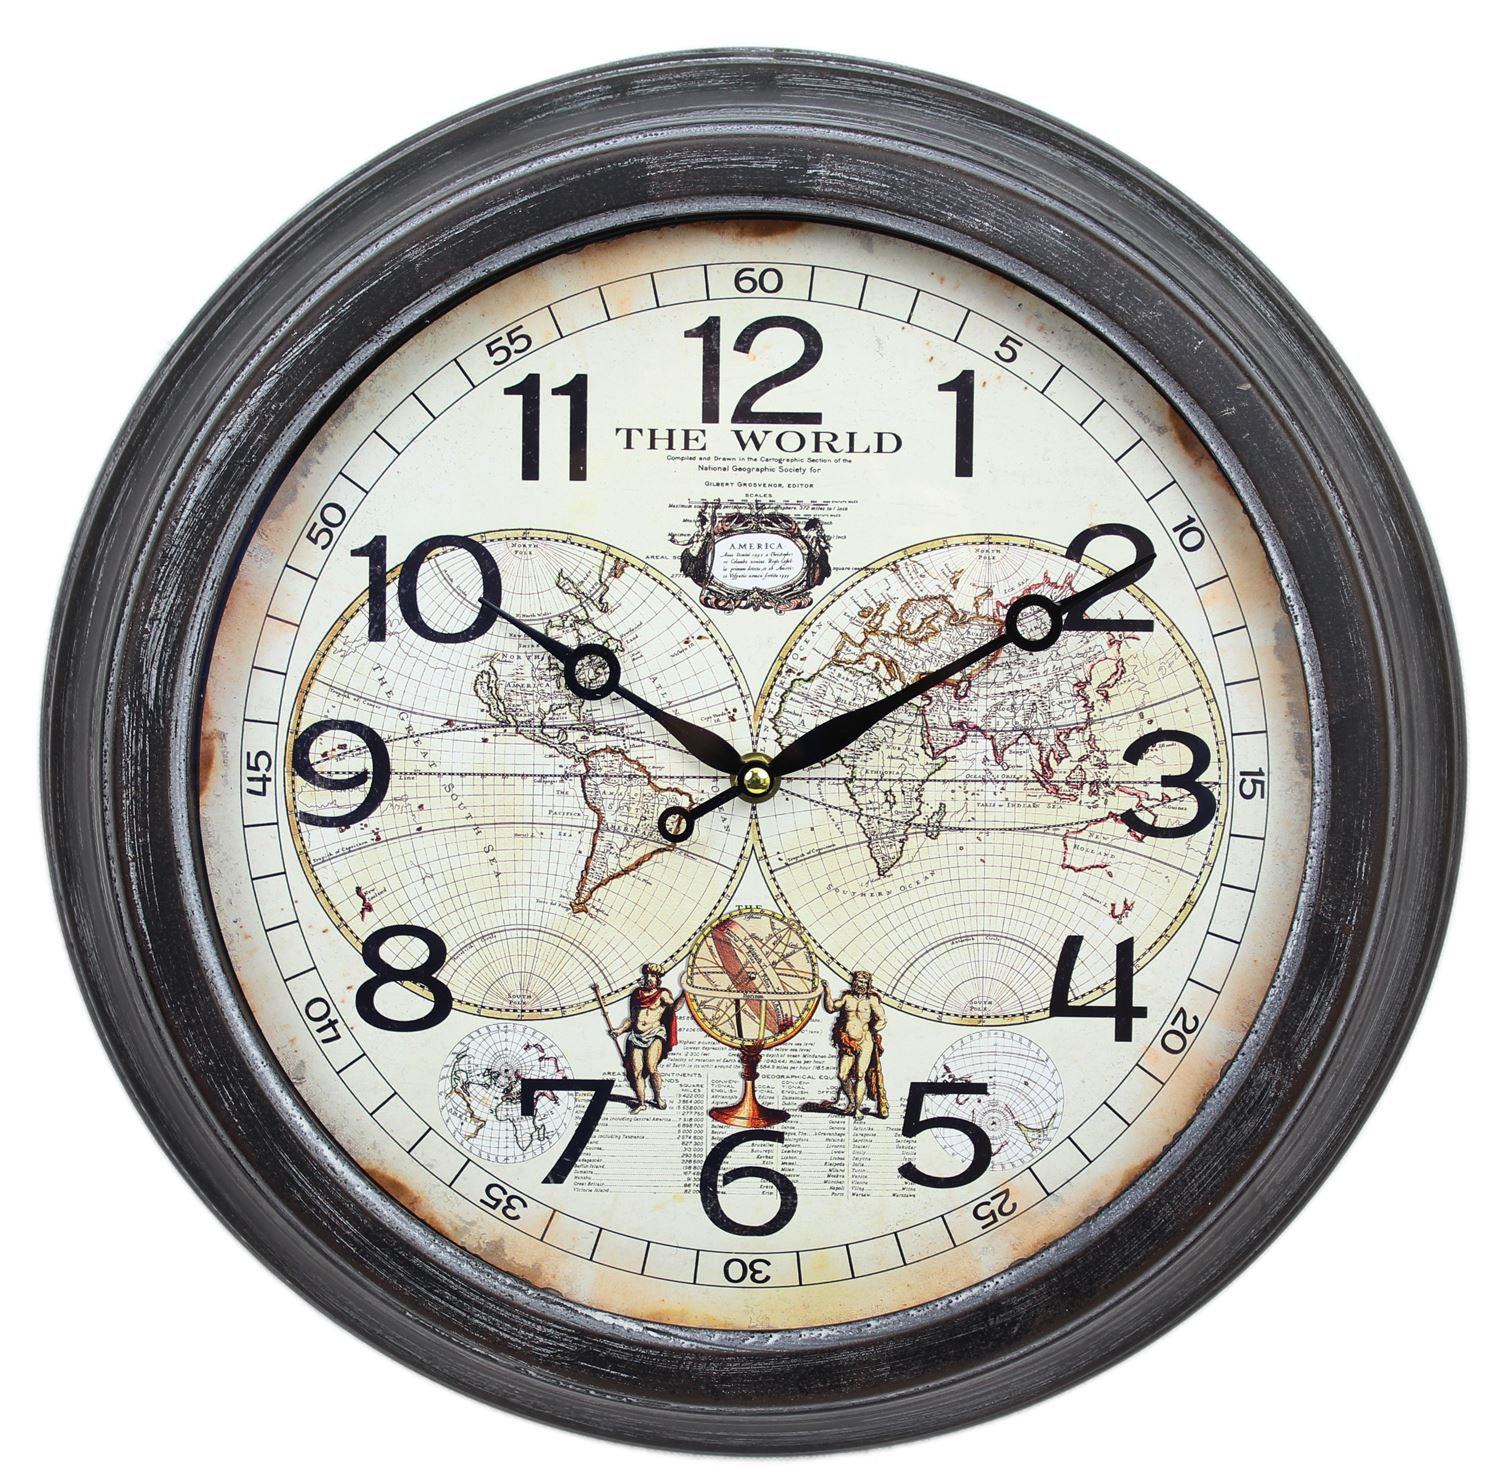 Hanging globe world map wall clock 41cm 5024418166238 ebay the map clock face is printed and is set within a distressed brown metal casing fabulous for anyone with a love of travelling or those that like something gumiabroncs Choice Image